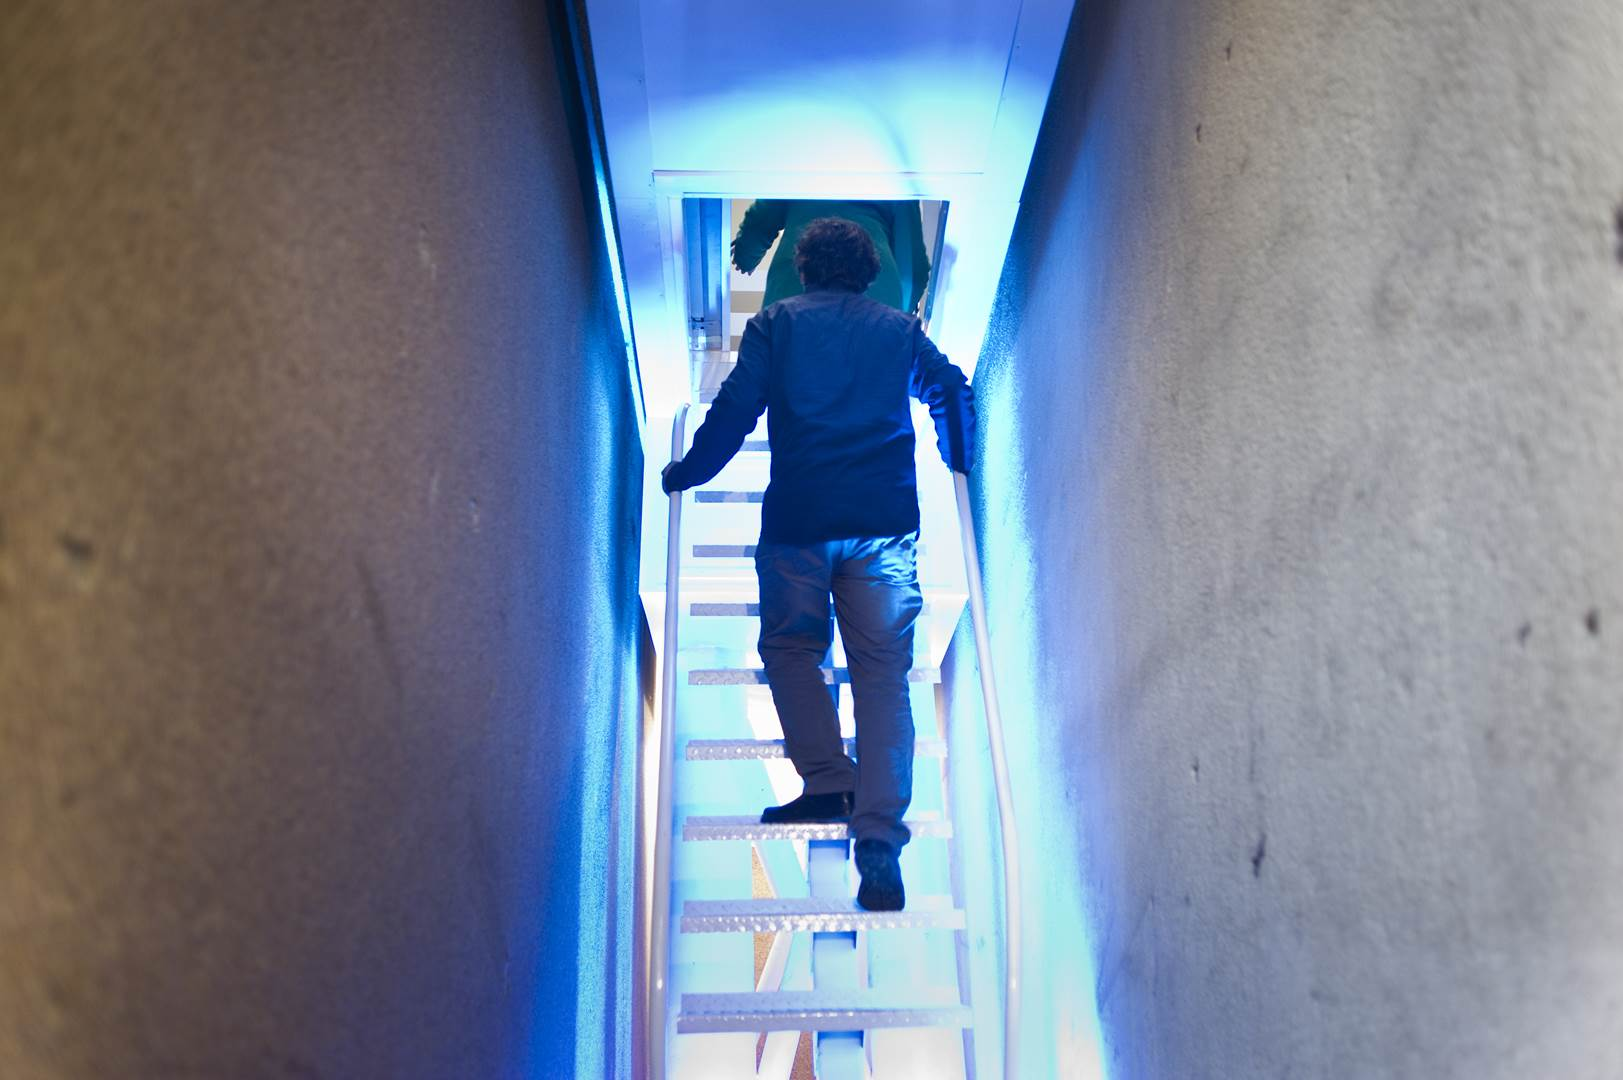 03. Etgar Keret geting into the Keret House, by Bartek Warzecha, © Polish Modern Art Foundation (Copy)